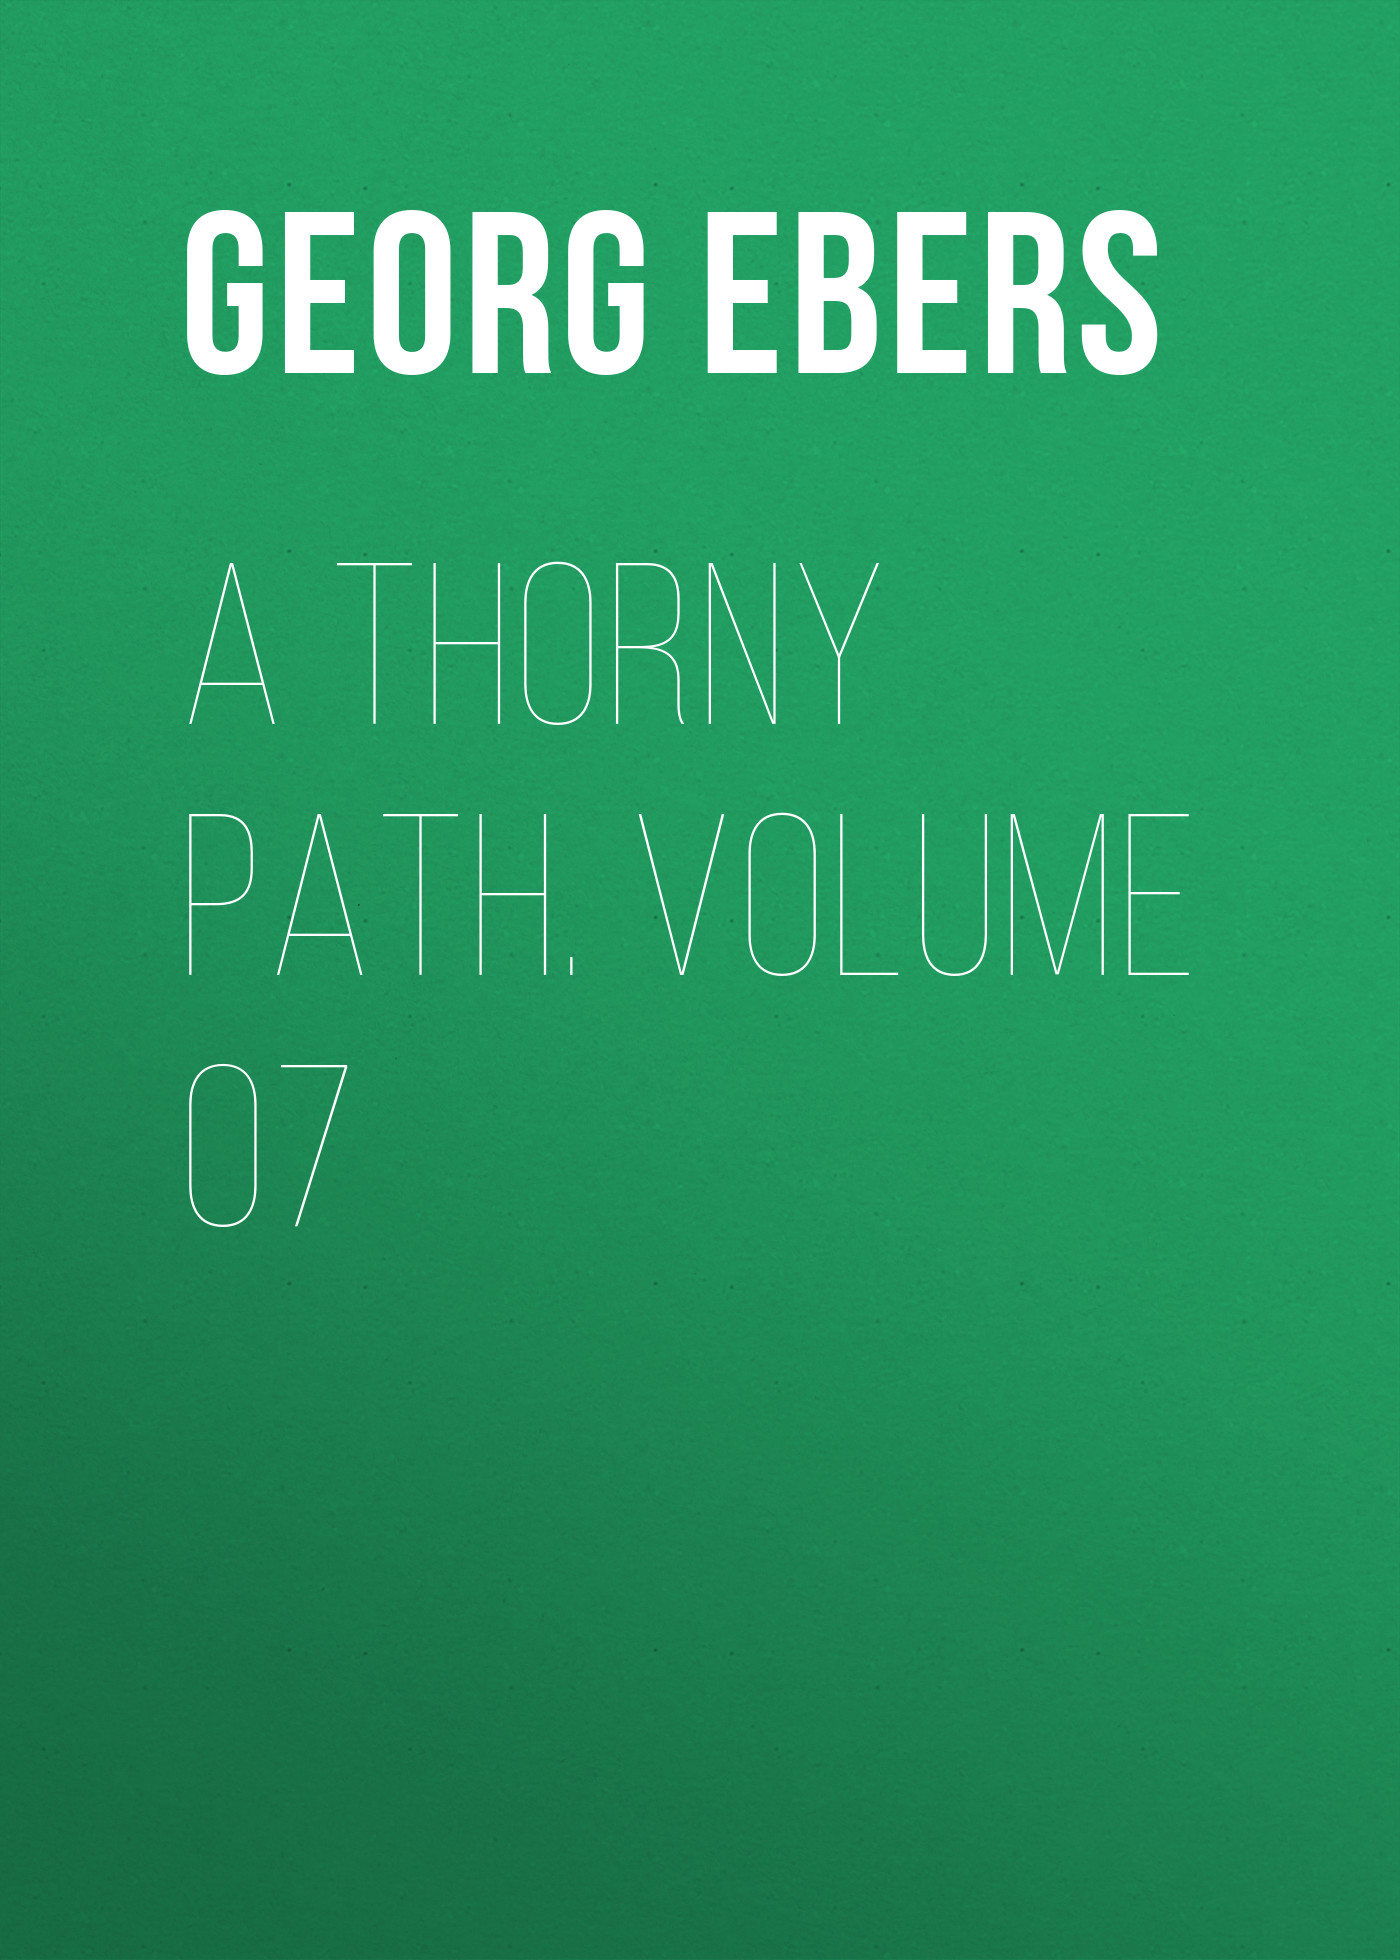 Georg Ebers A Thorny Path. Volume 07